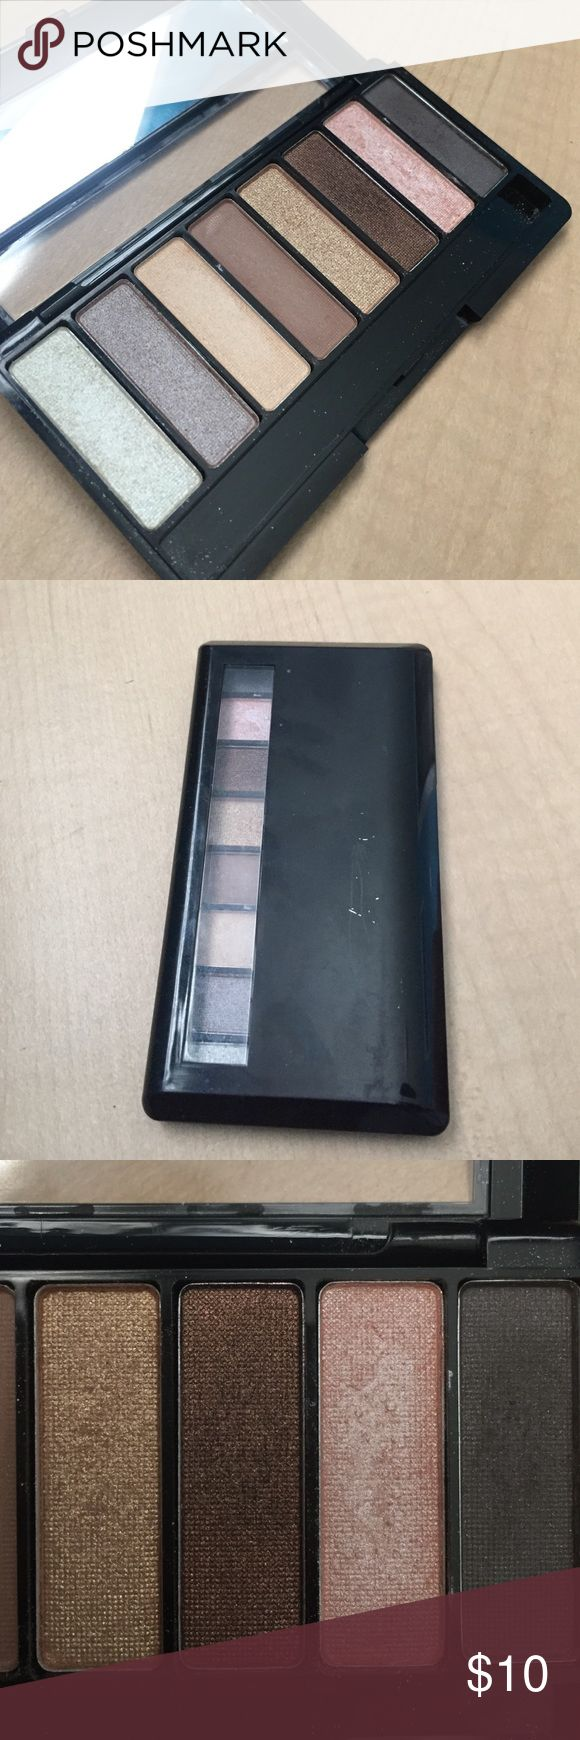 Nudes Eyeshadow Palette small, easy travel 8 eyeshadow palette. very compact. only used to swatch and the color used the most is the pink but it's still very good. *NOT URBAN DECAY* just there to get it seen. original brand is Avon. Urban Decay Makeup Eyeshadow